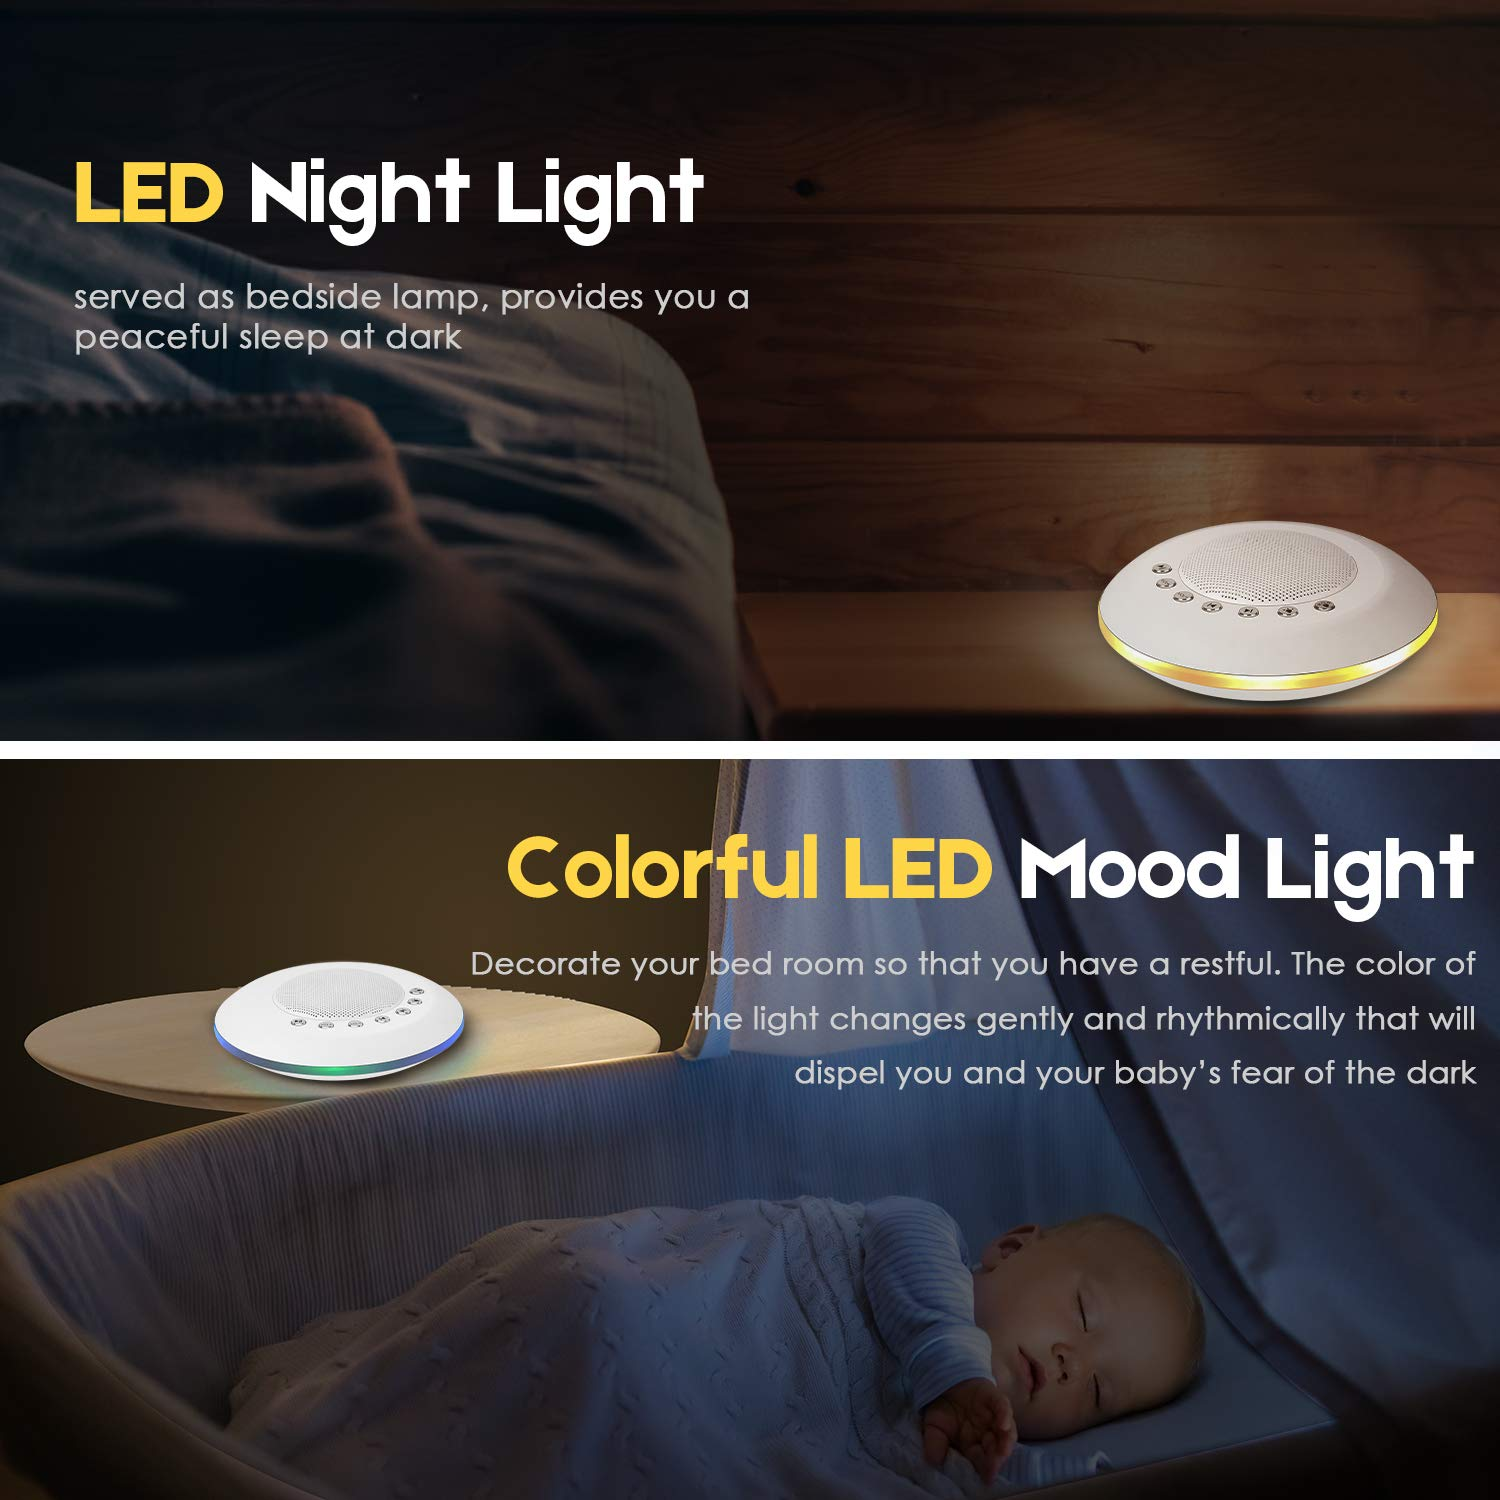 Sound Machine - White Noise Machine for Sleeping, with LED Colorful Night Light 20 Soothing HiFi Sounds, Continuous or Timer, Rechargeable Battery or USB Output Charger by EliveBuy (Image #3)